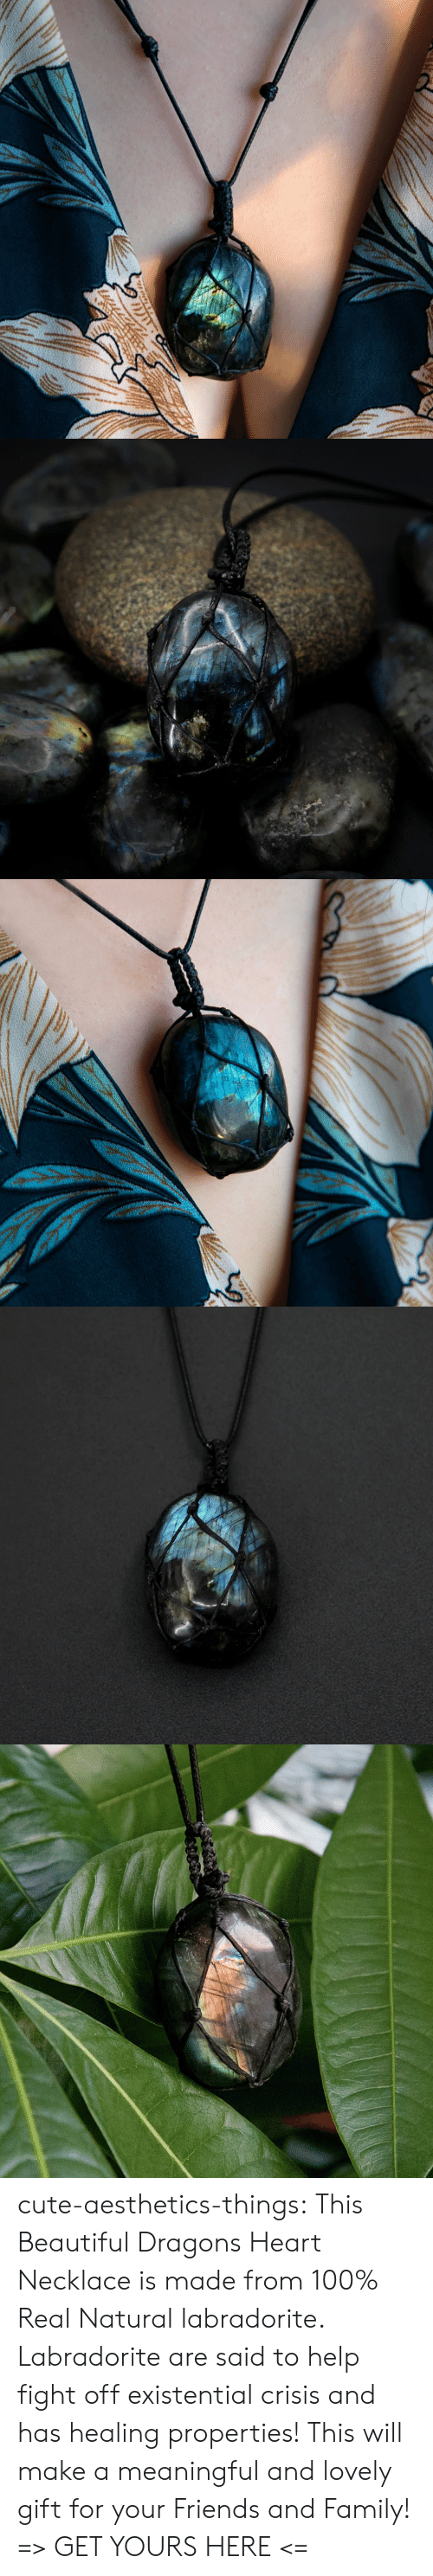 existential: cute-aesthetics-things: This Beautiful Dragons Heart Necklace is made from 100% Real Natural labradorite. Labradorite are said to help fight offexistential crisis and has healing properties! This will make a meaningful and lovely gift for your Friends and Family! => GET YOURS HERE <=